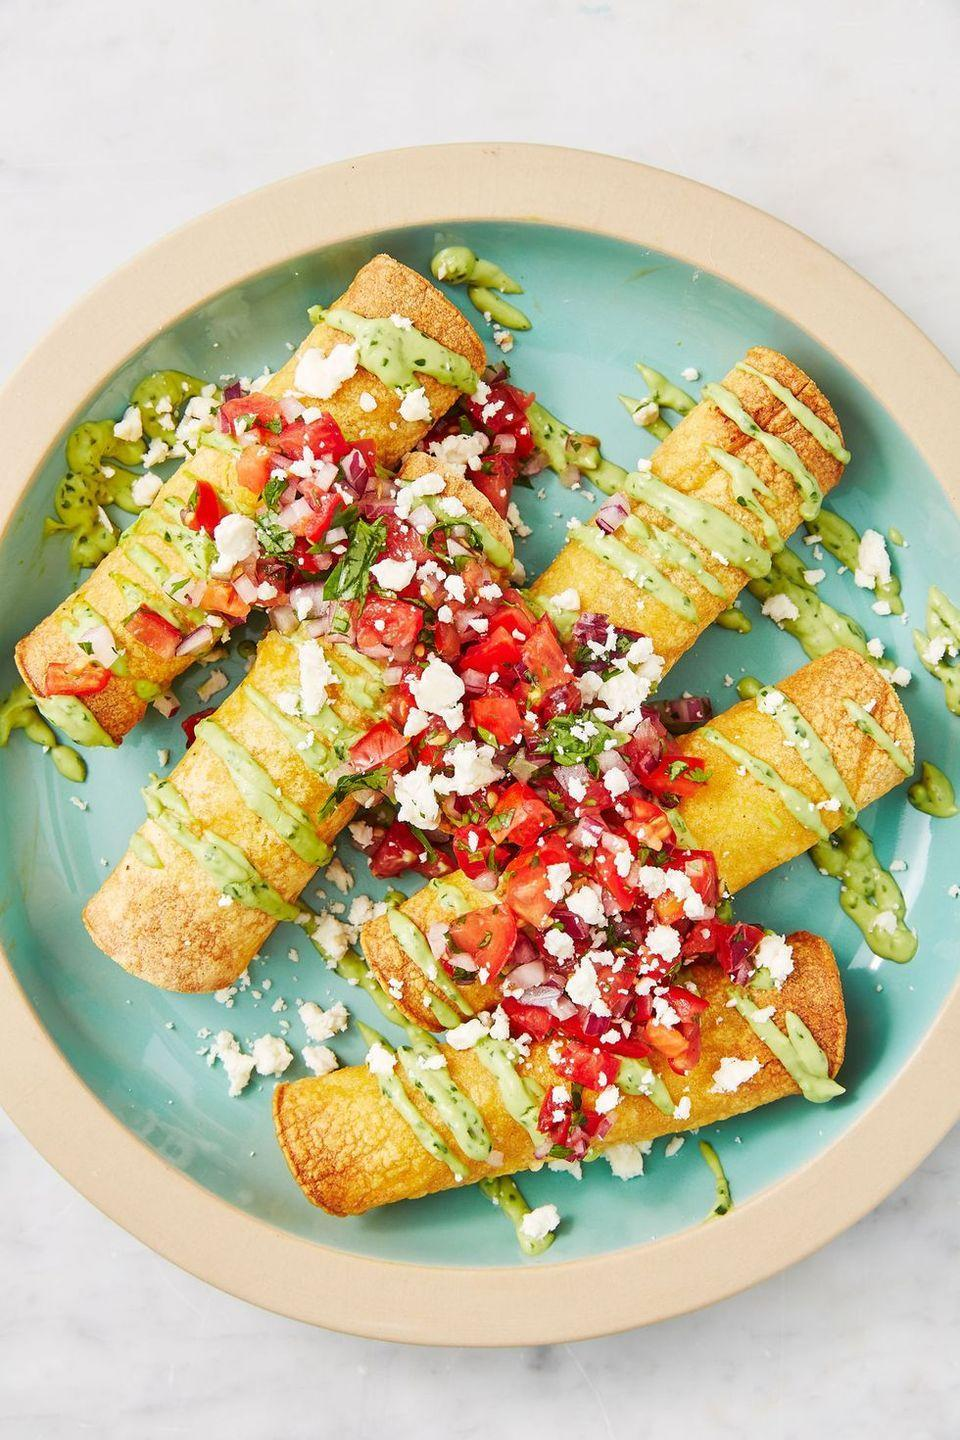 "<p>These extra thin and extra crispy treats have all the flavor of tacos with a little extra crunch.</p><p><em><a href=""https://www.delish.com/cooking/recipe-ideas/a28577904/chicken-taquitos-recipe/"" rel=""nofollow noopener"" target=""_blank"" data-ylk=""slk:Get the recipe from Delish »"" class=""link rapid-noclick-resp"">Get the recipe from Delish »</a></em></p>"